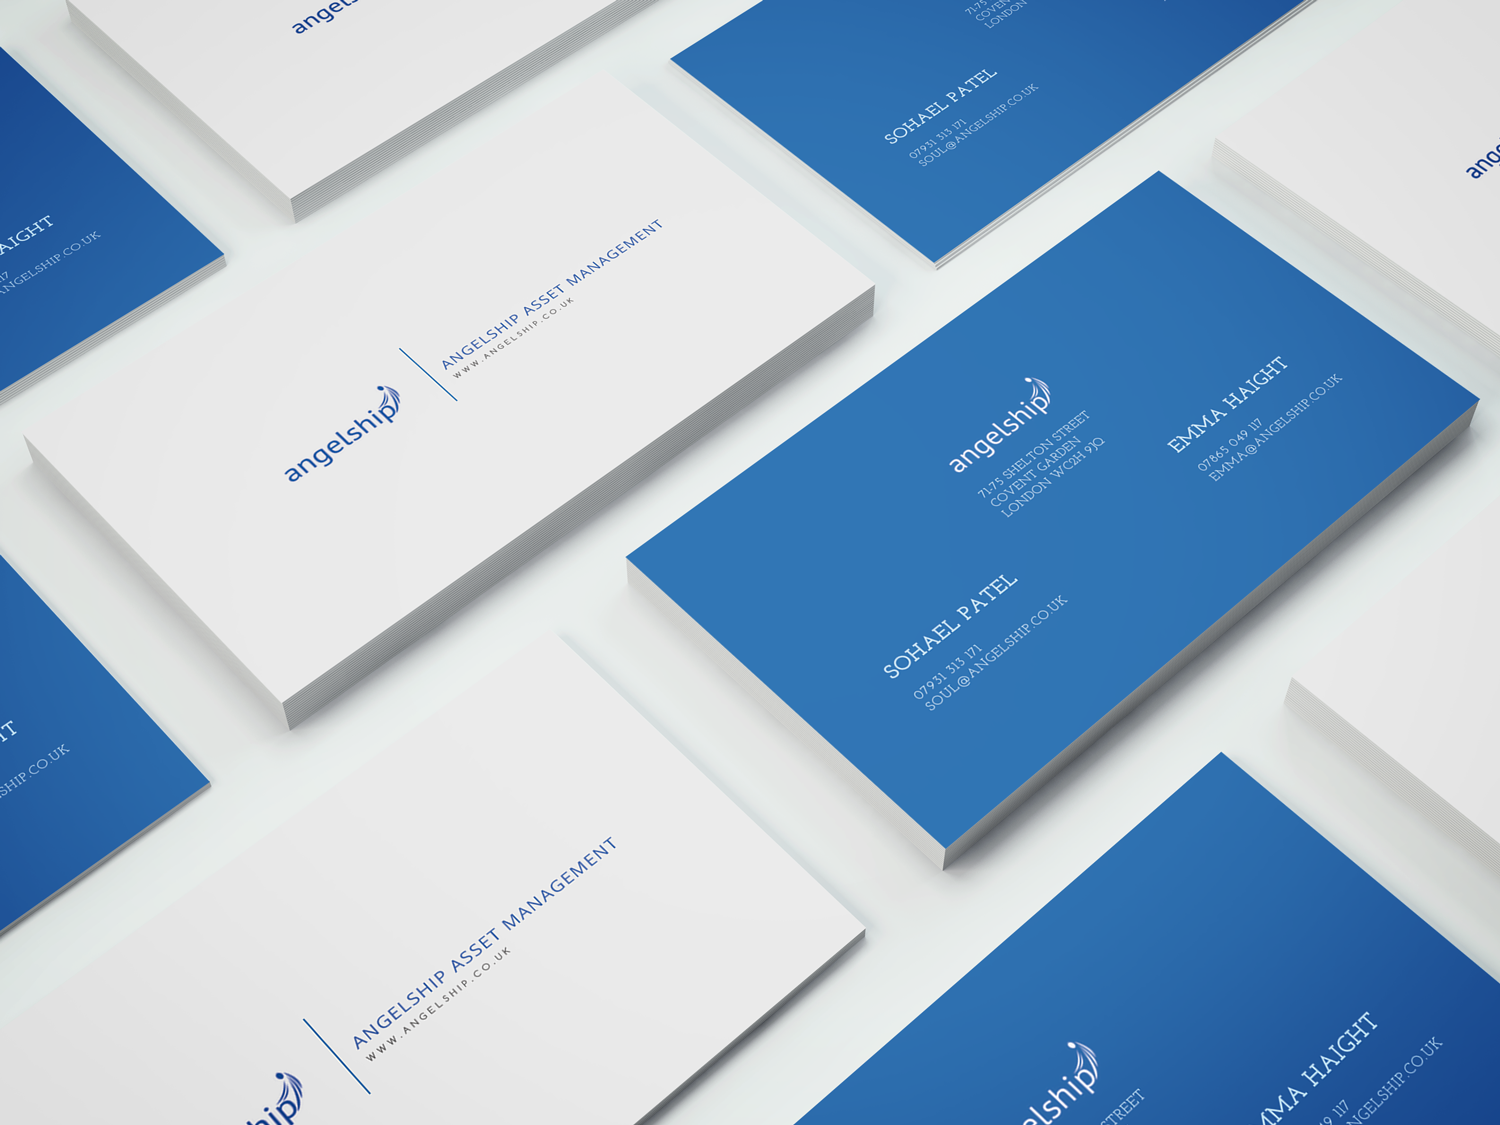 Upmarket, Serious, Real Estate Development Business Card Design for